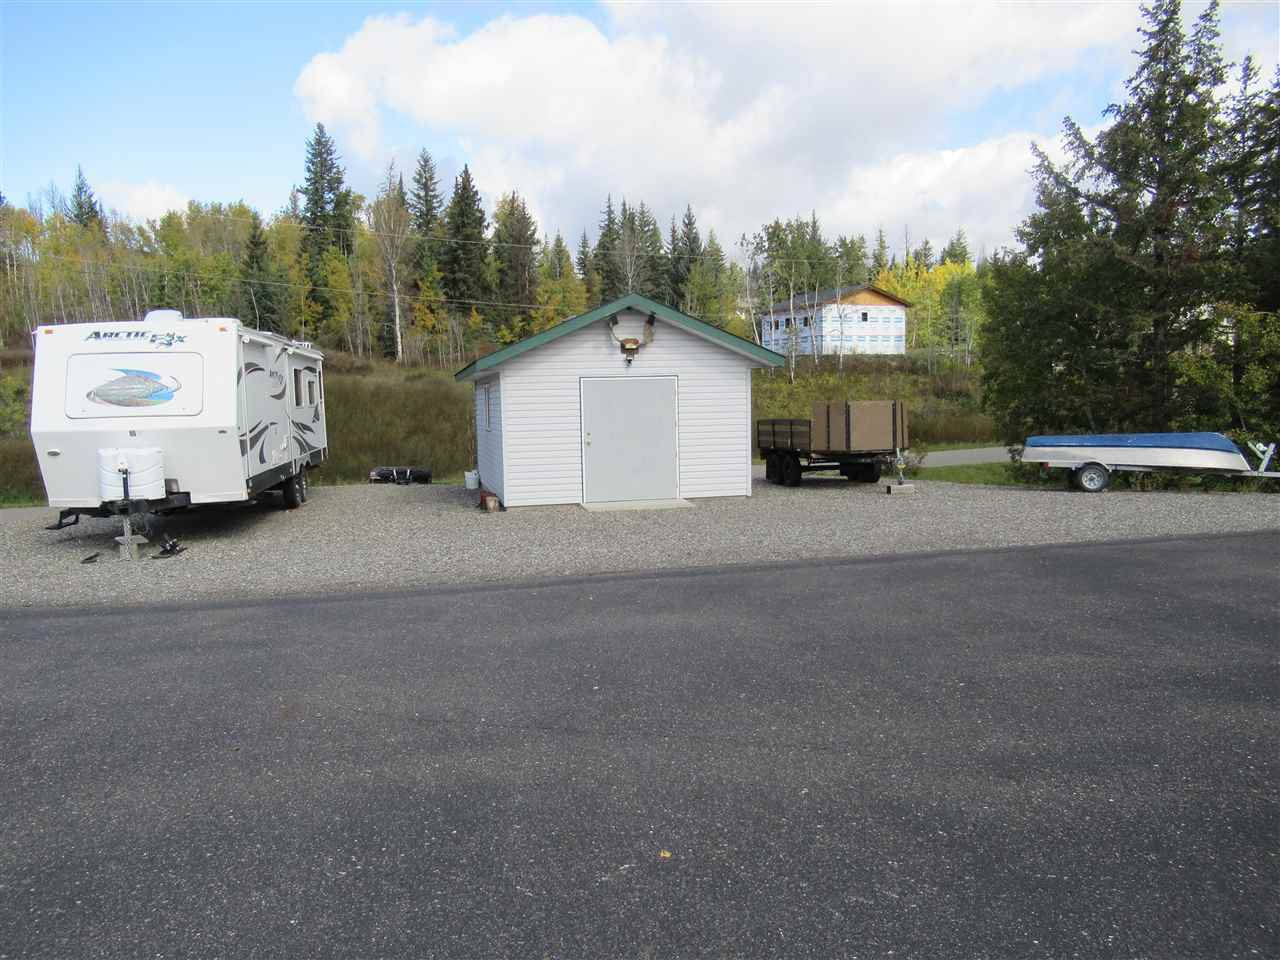 Photo 19: Photos: 2884 GOLD DIGGER Drive: 150 Mile House House for sale (Williams Lake (Zone 27))  : MLS®# R2409553